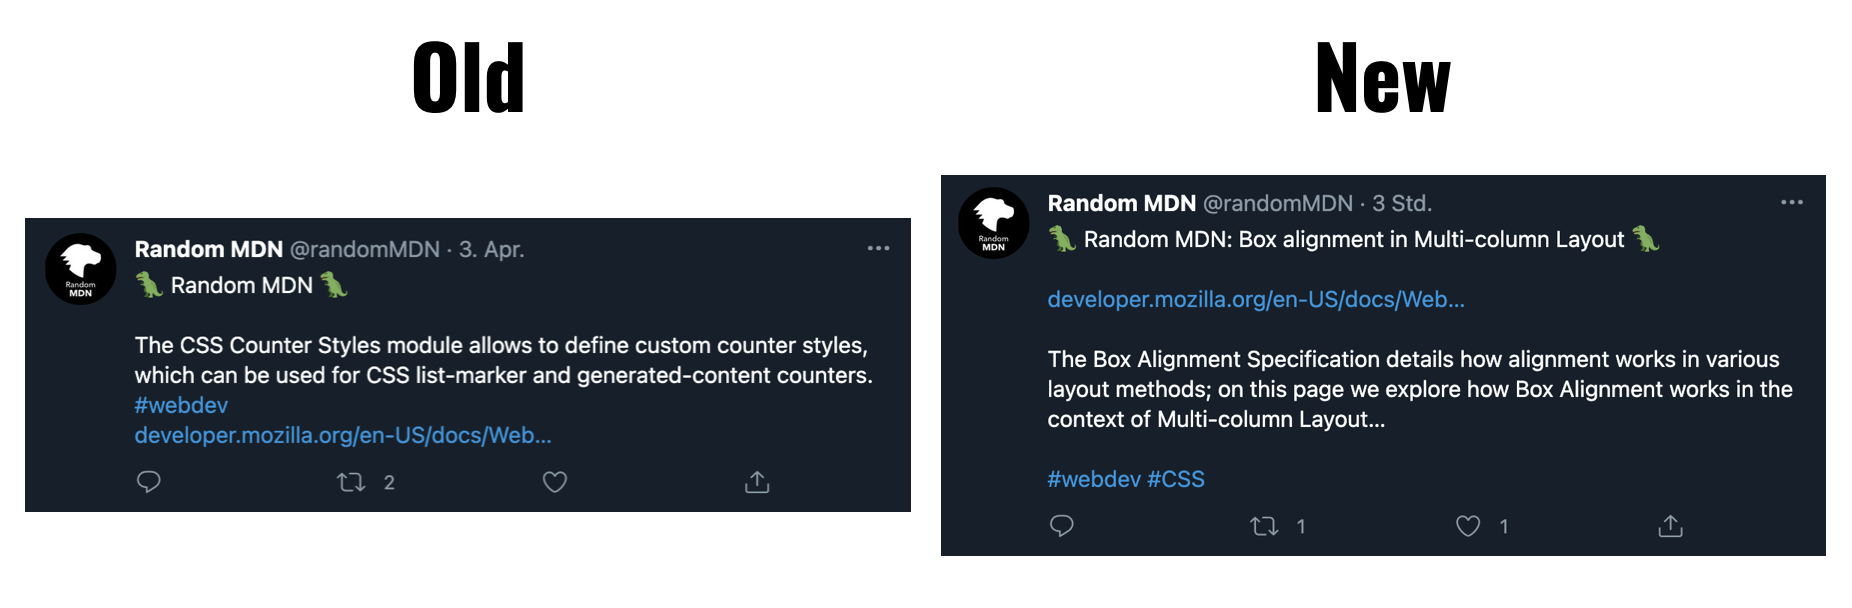 Comparison of old and new RandomMDN Tweet format